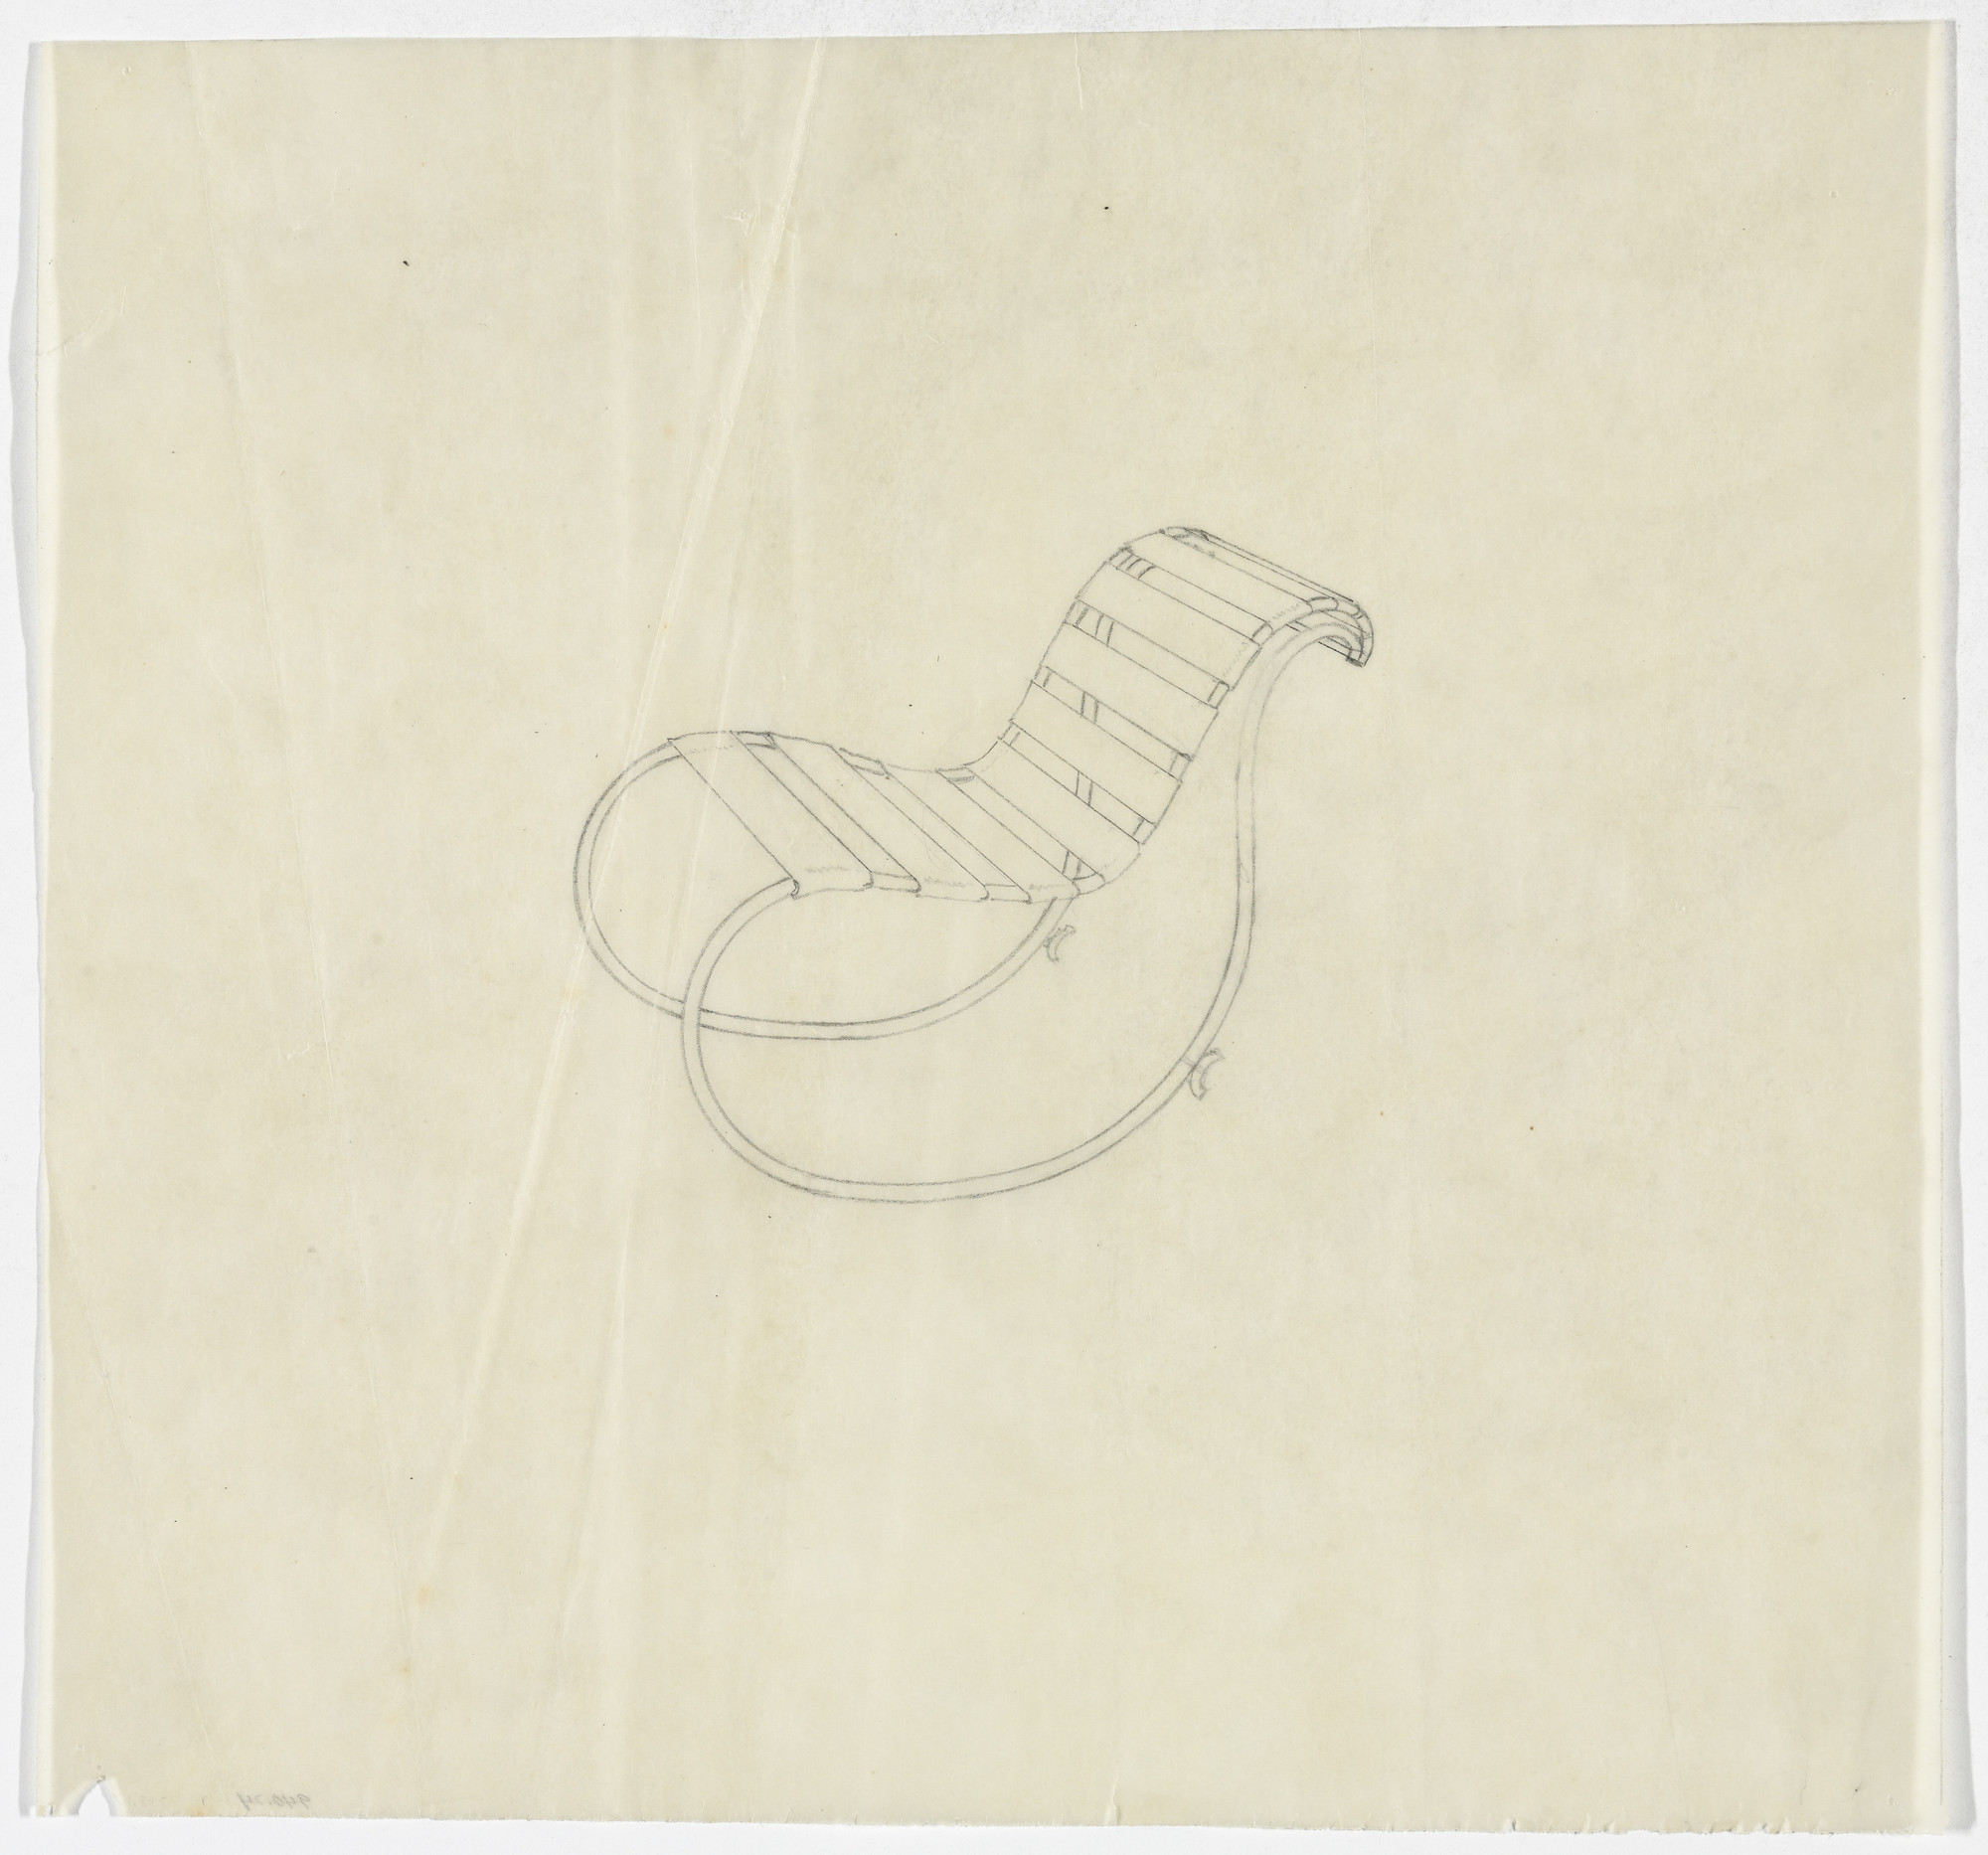 Ludwig Mies van der Rohe. Lounge Chair with Rocker, without Arms (Perspective sketch). 1934